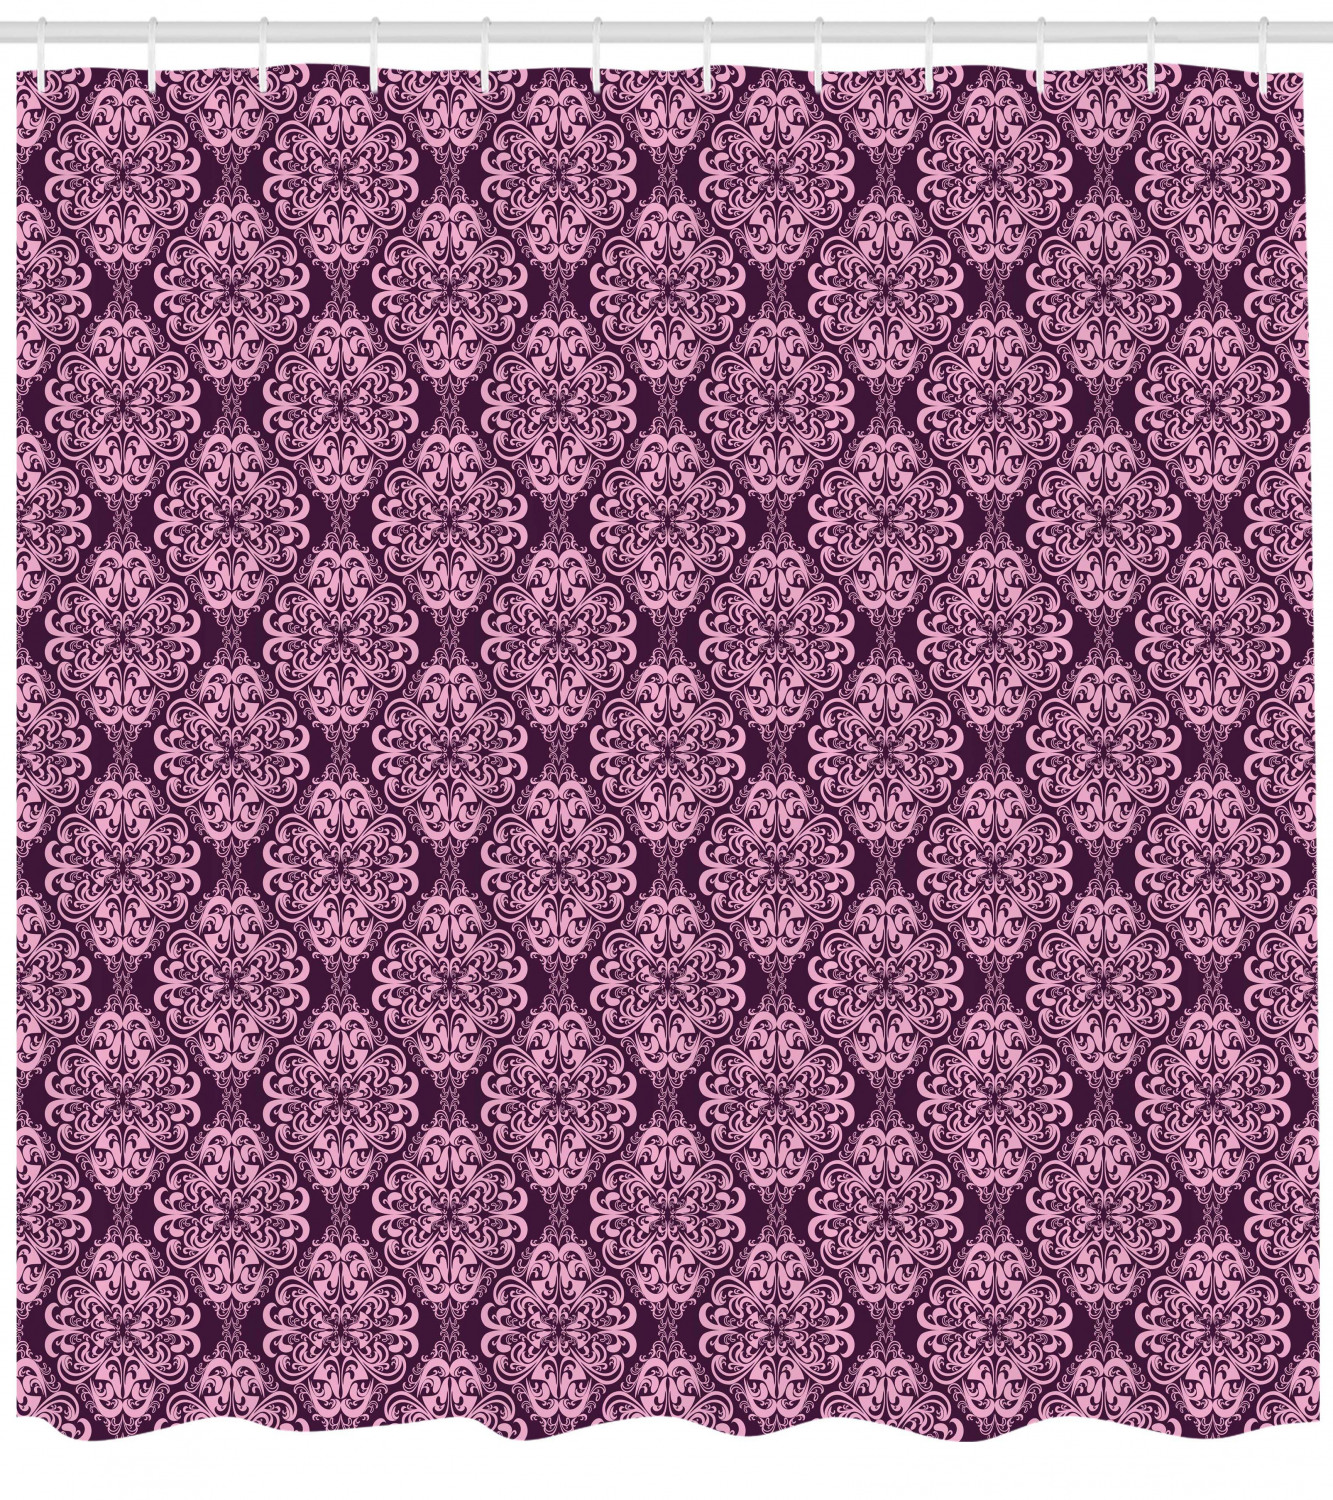 Sweet Home Collection Jasmine Plum Bathroom Fabric Shower Curtain and Hook Set